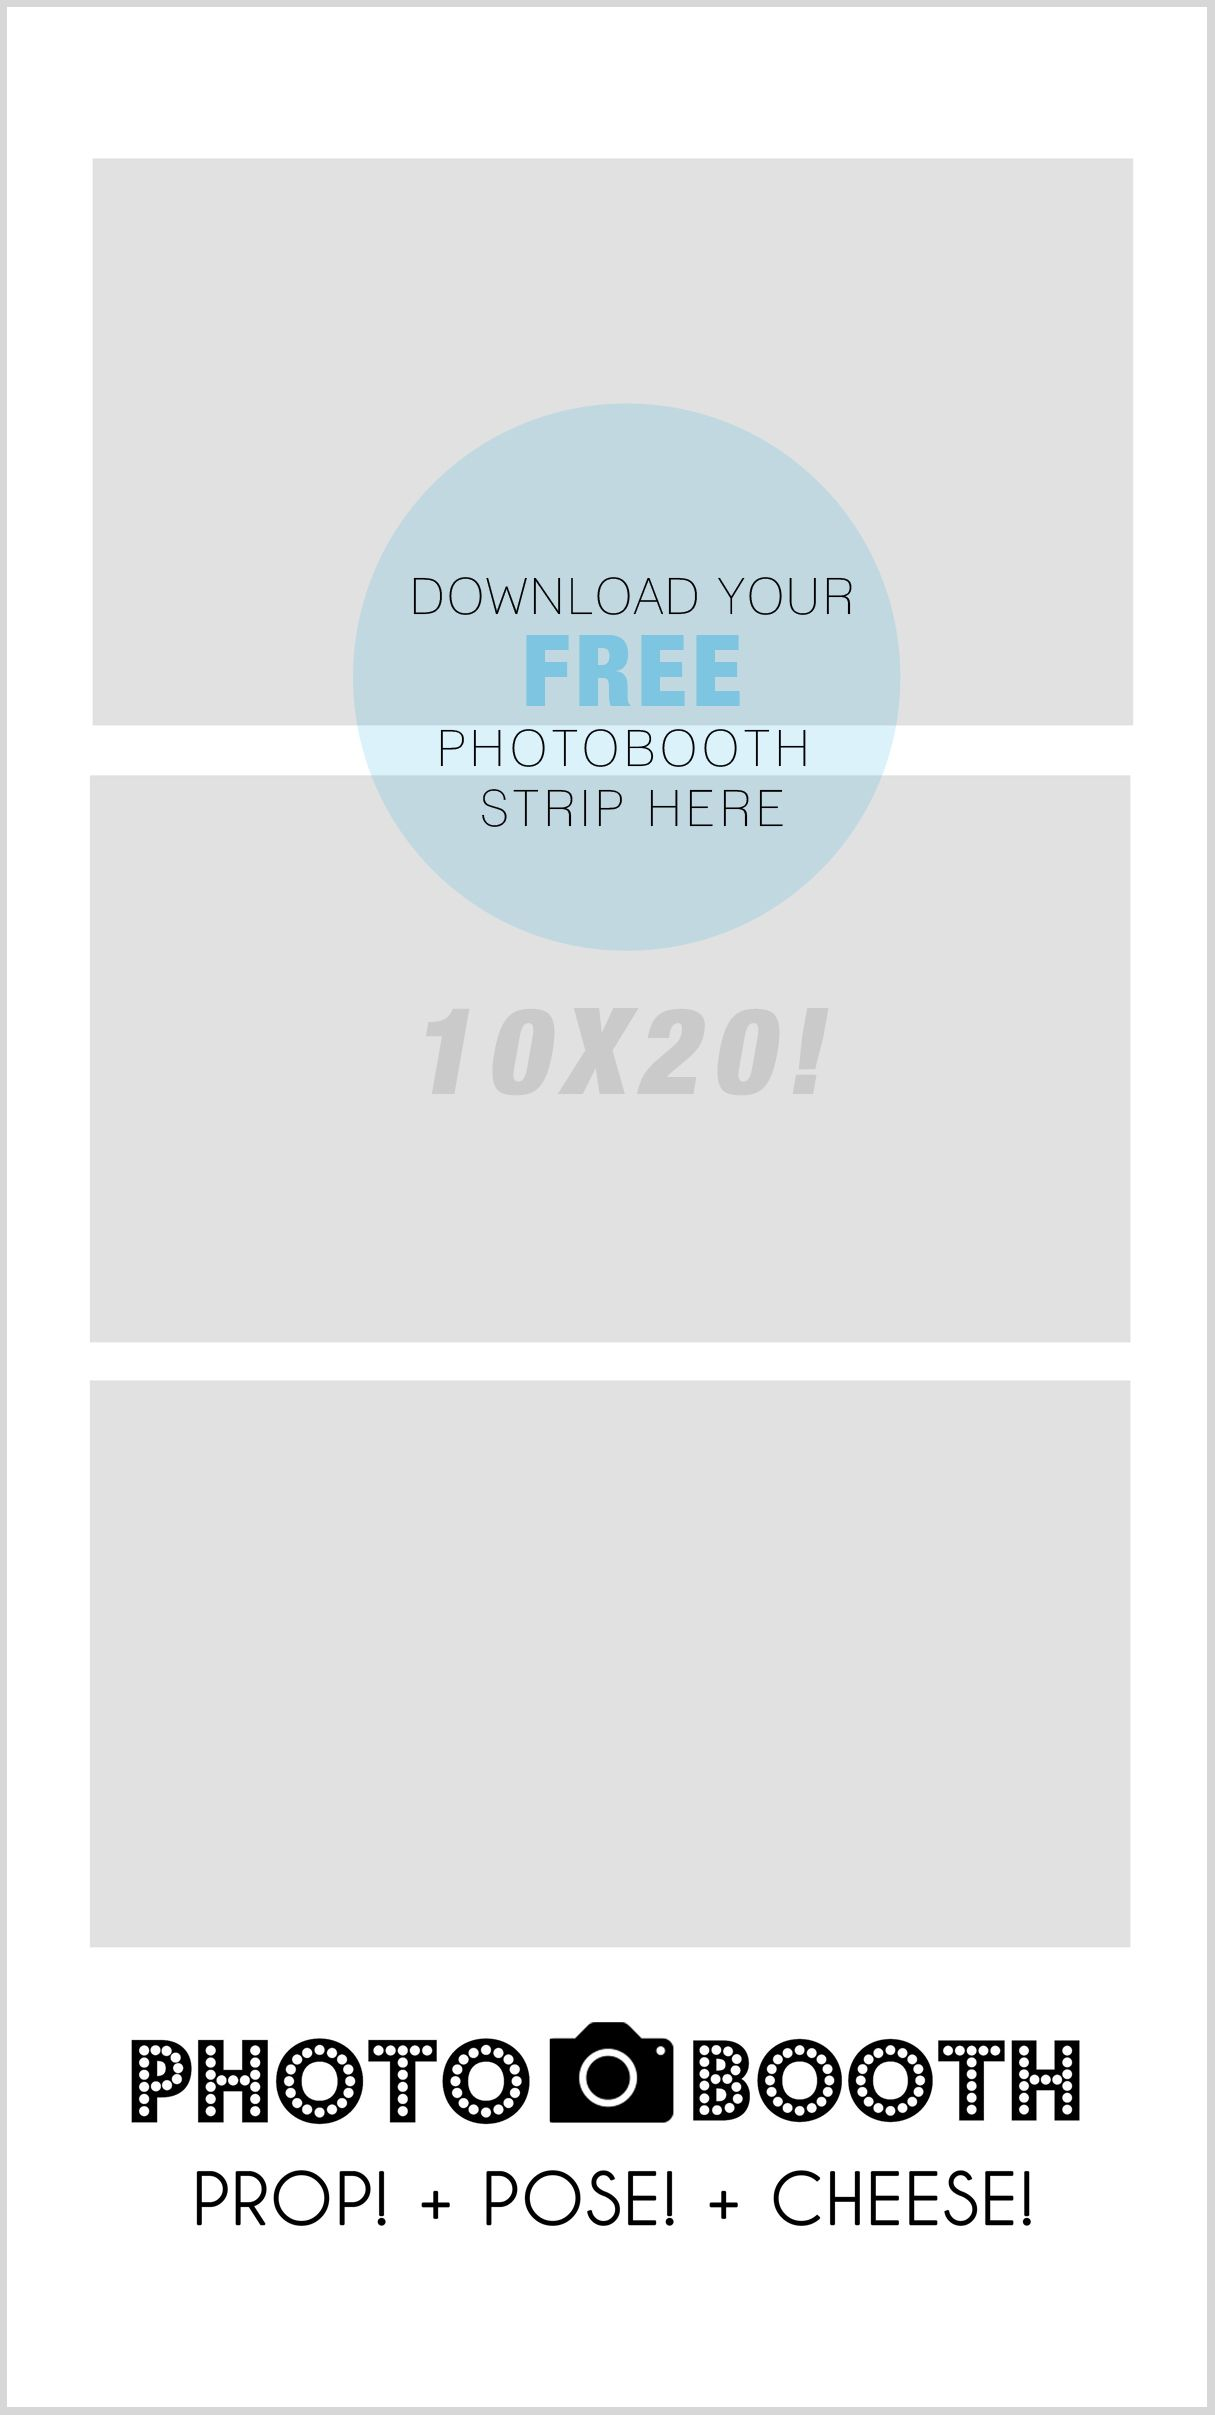 this is a 10x20 photoshop template to use to create your own